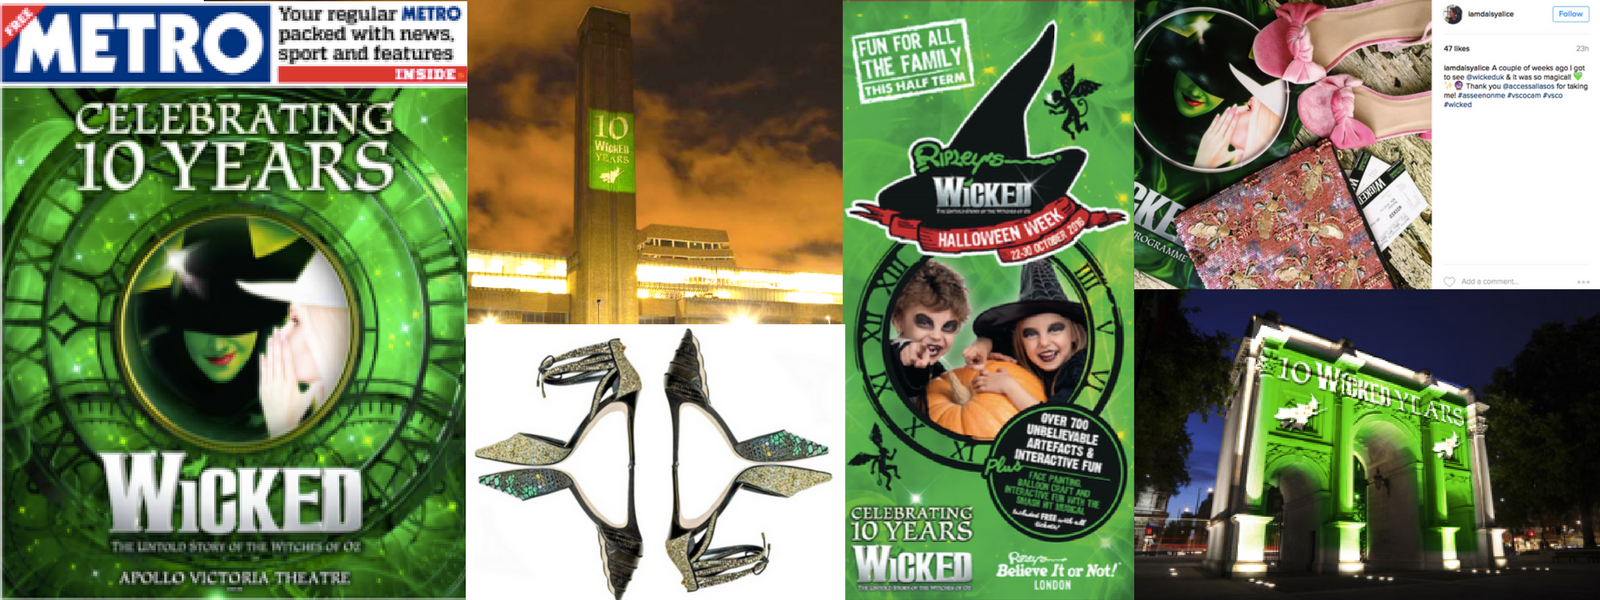 Wicked: 10th Birthday Campaign